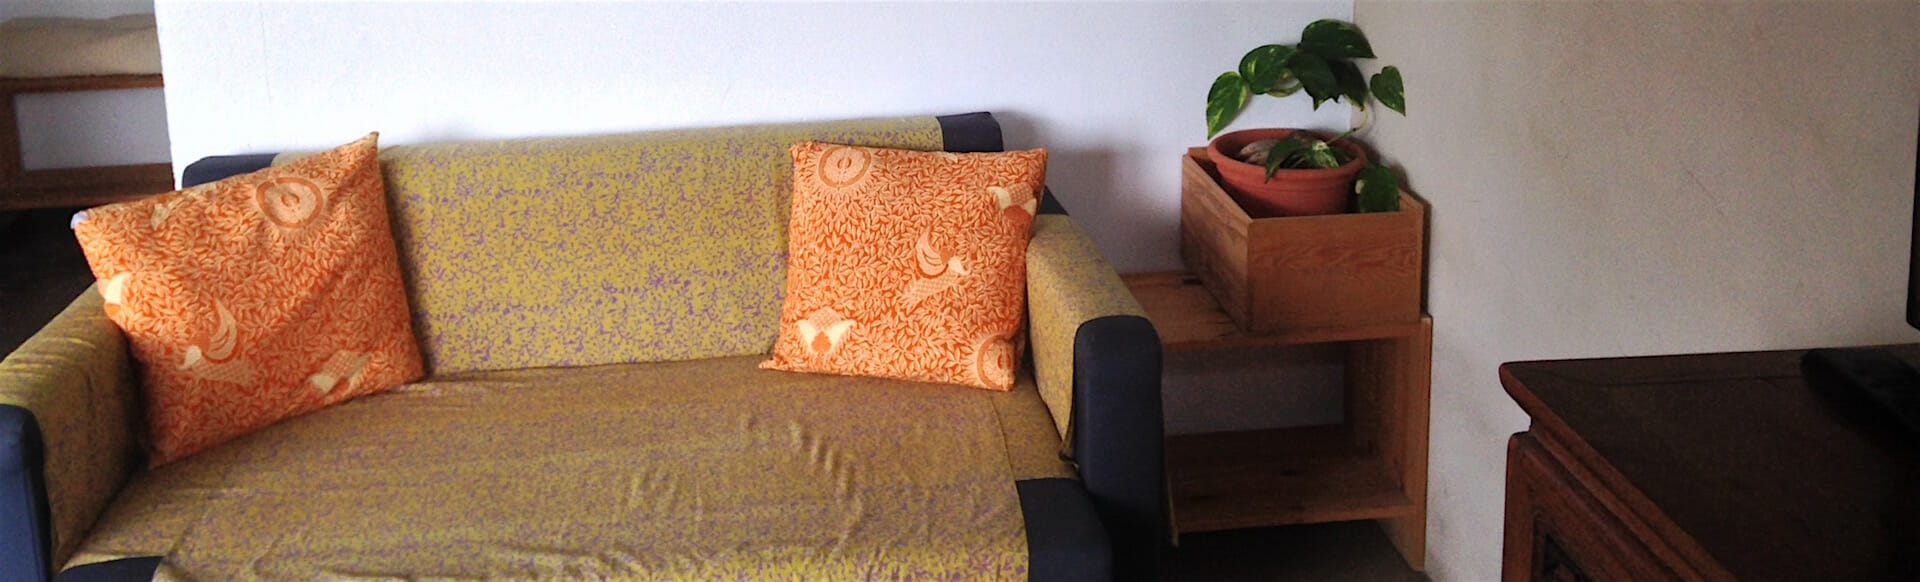 Habitación normal sofa